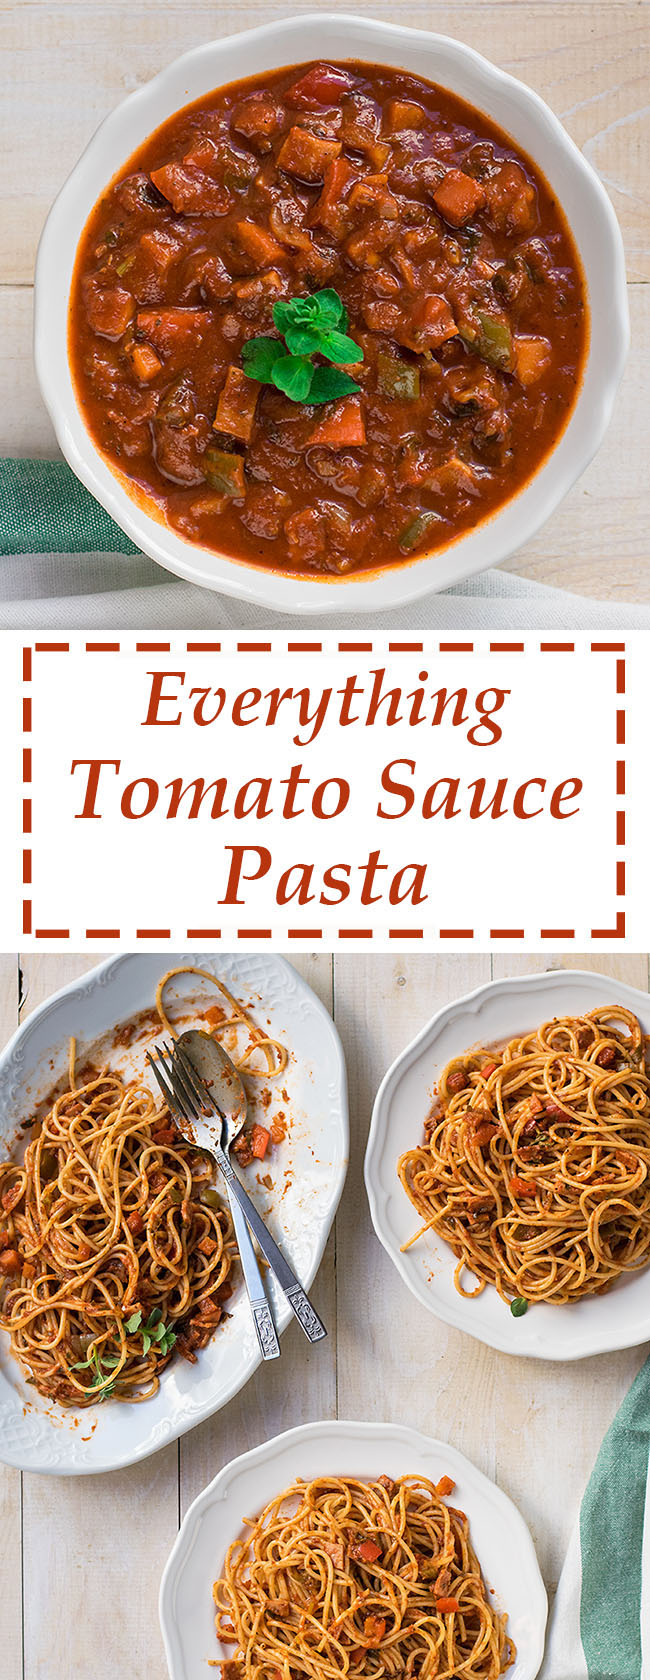 Everything tomato sauce for pasta 6